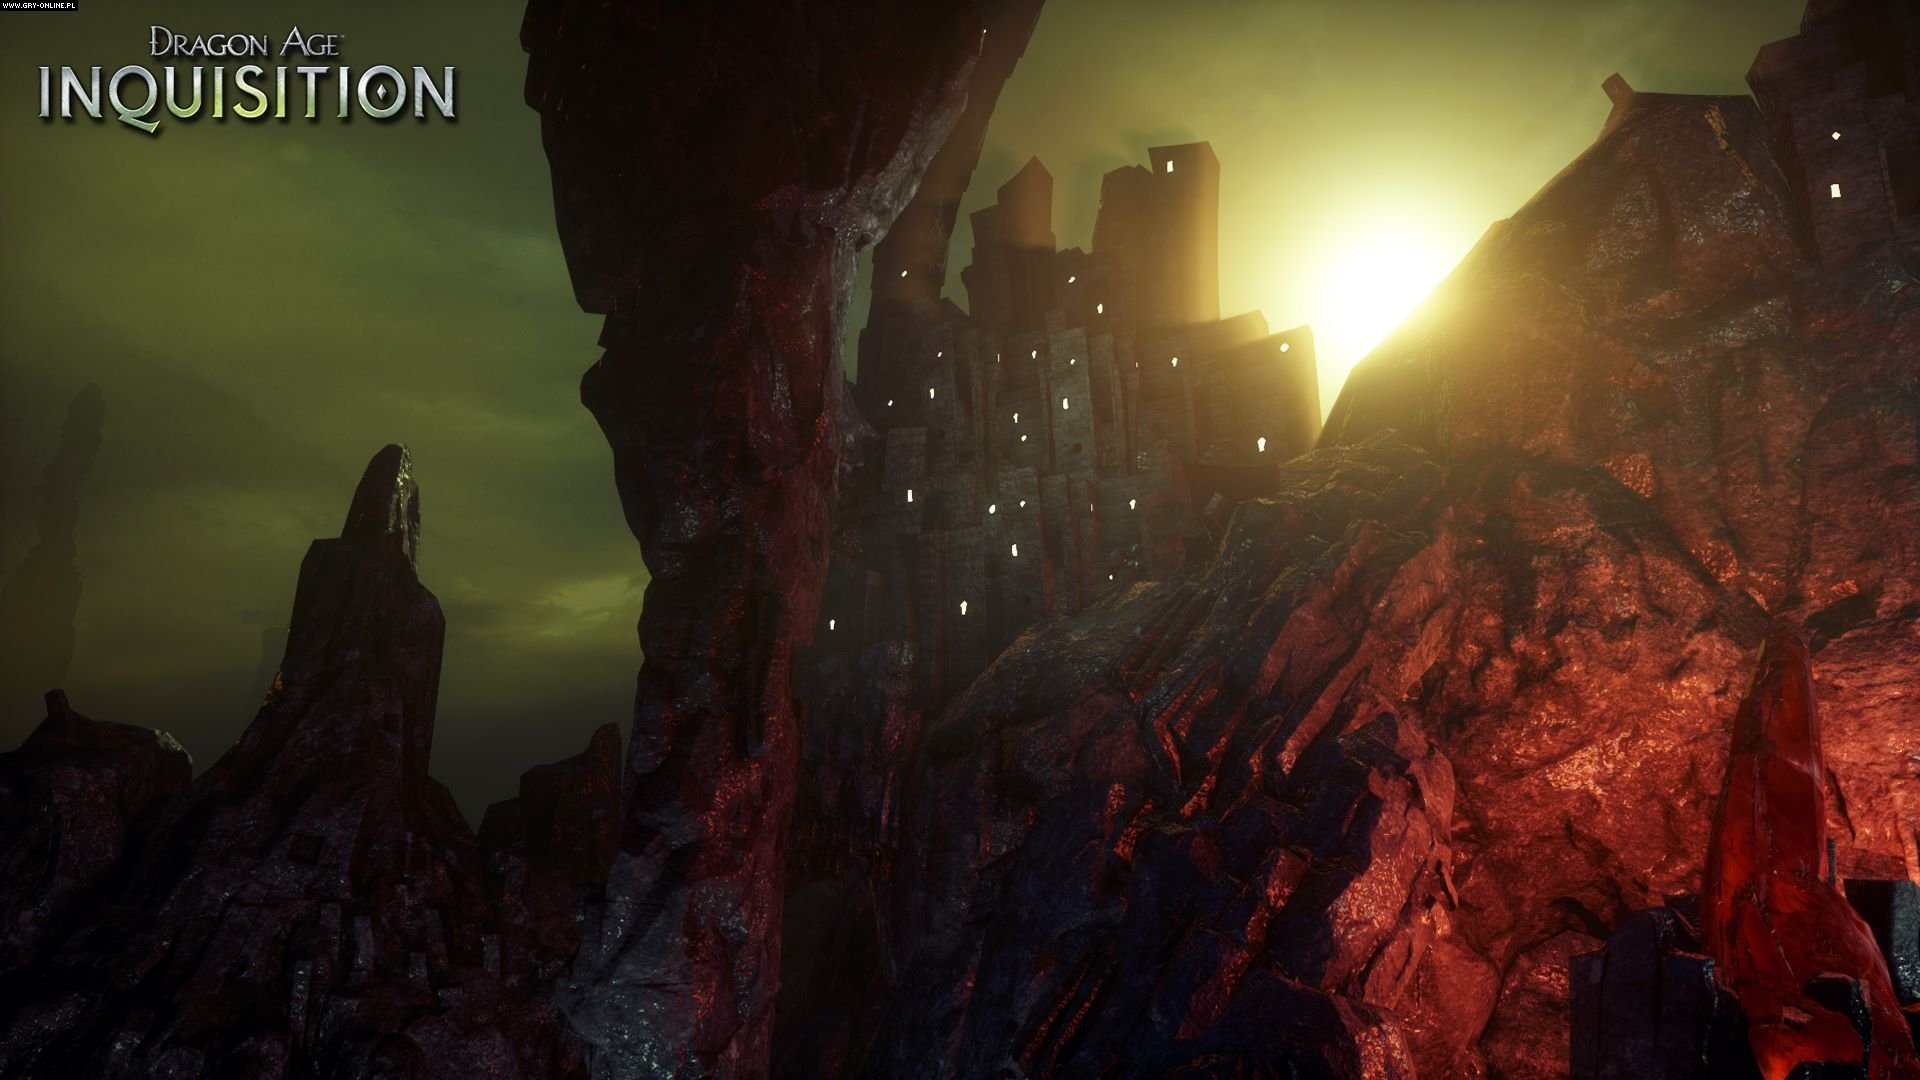 Dragon Age: Inkwizycja PC, X360, PS3 Gry Screen 84/225, BioWare Corporation, Electronic Arts Inc.